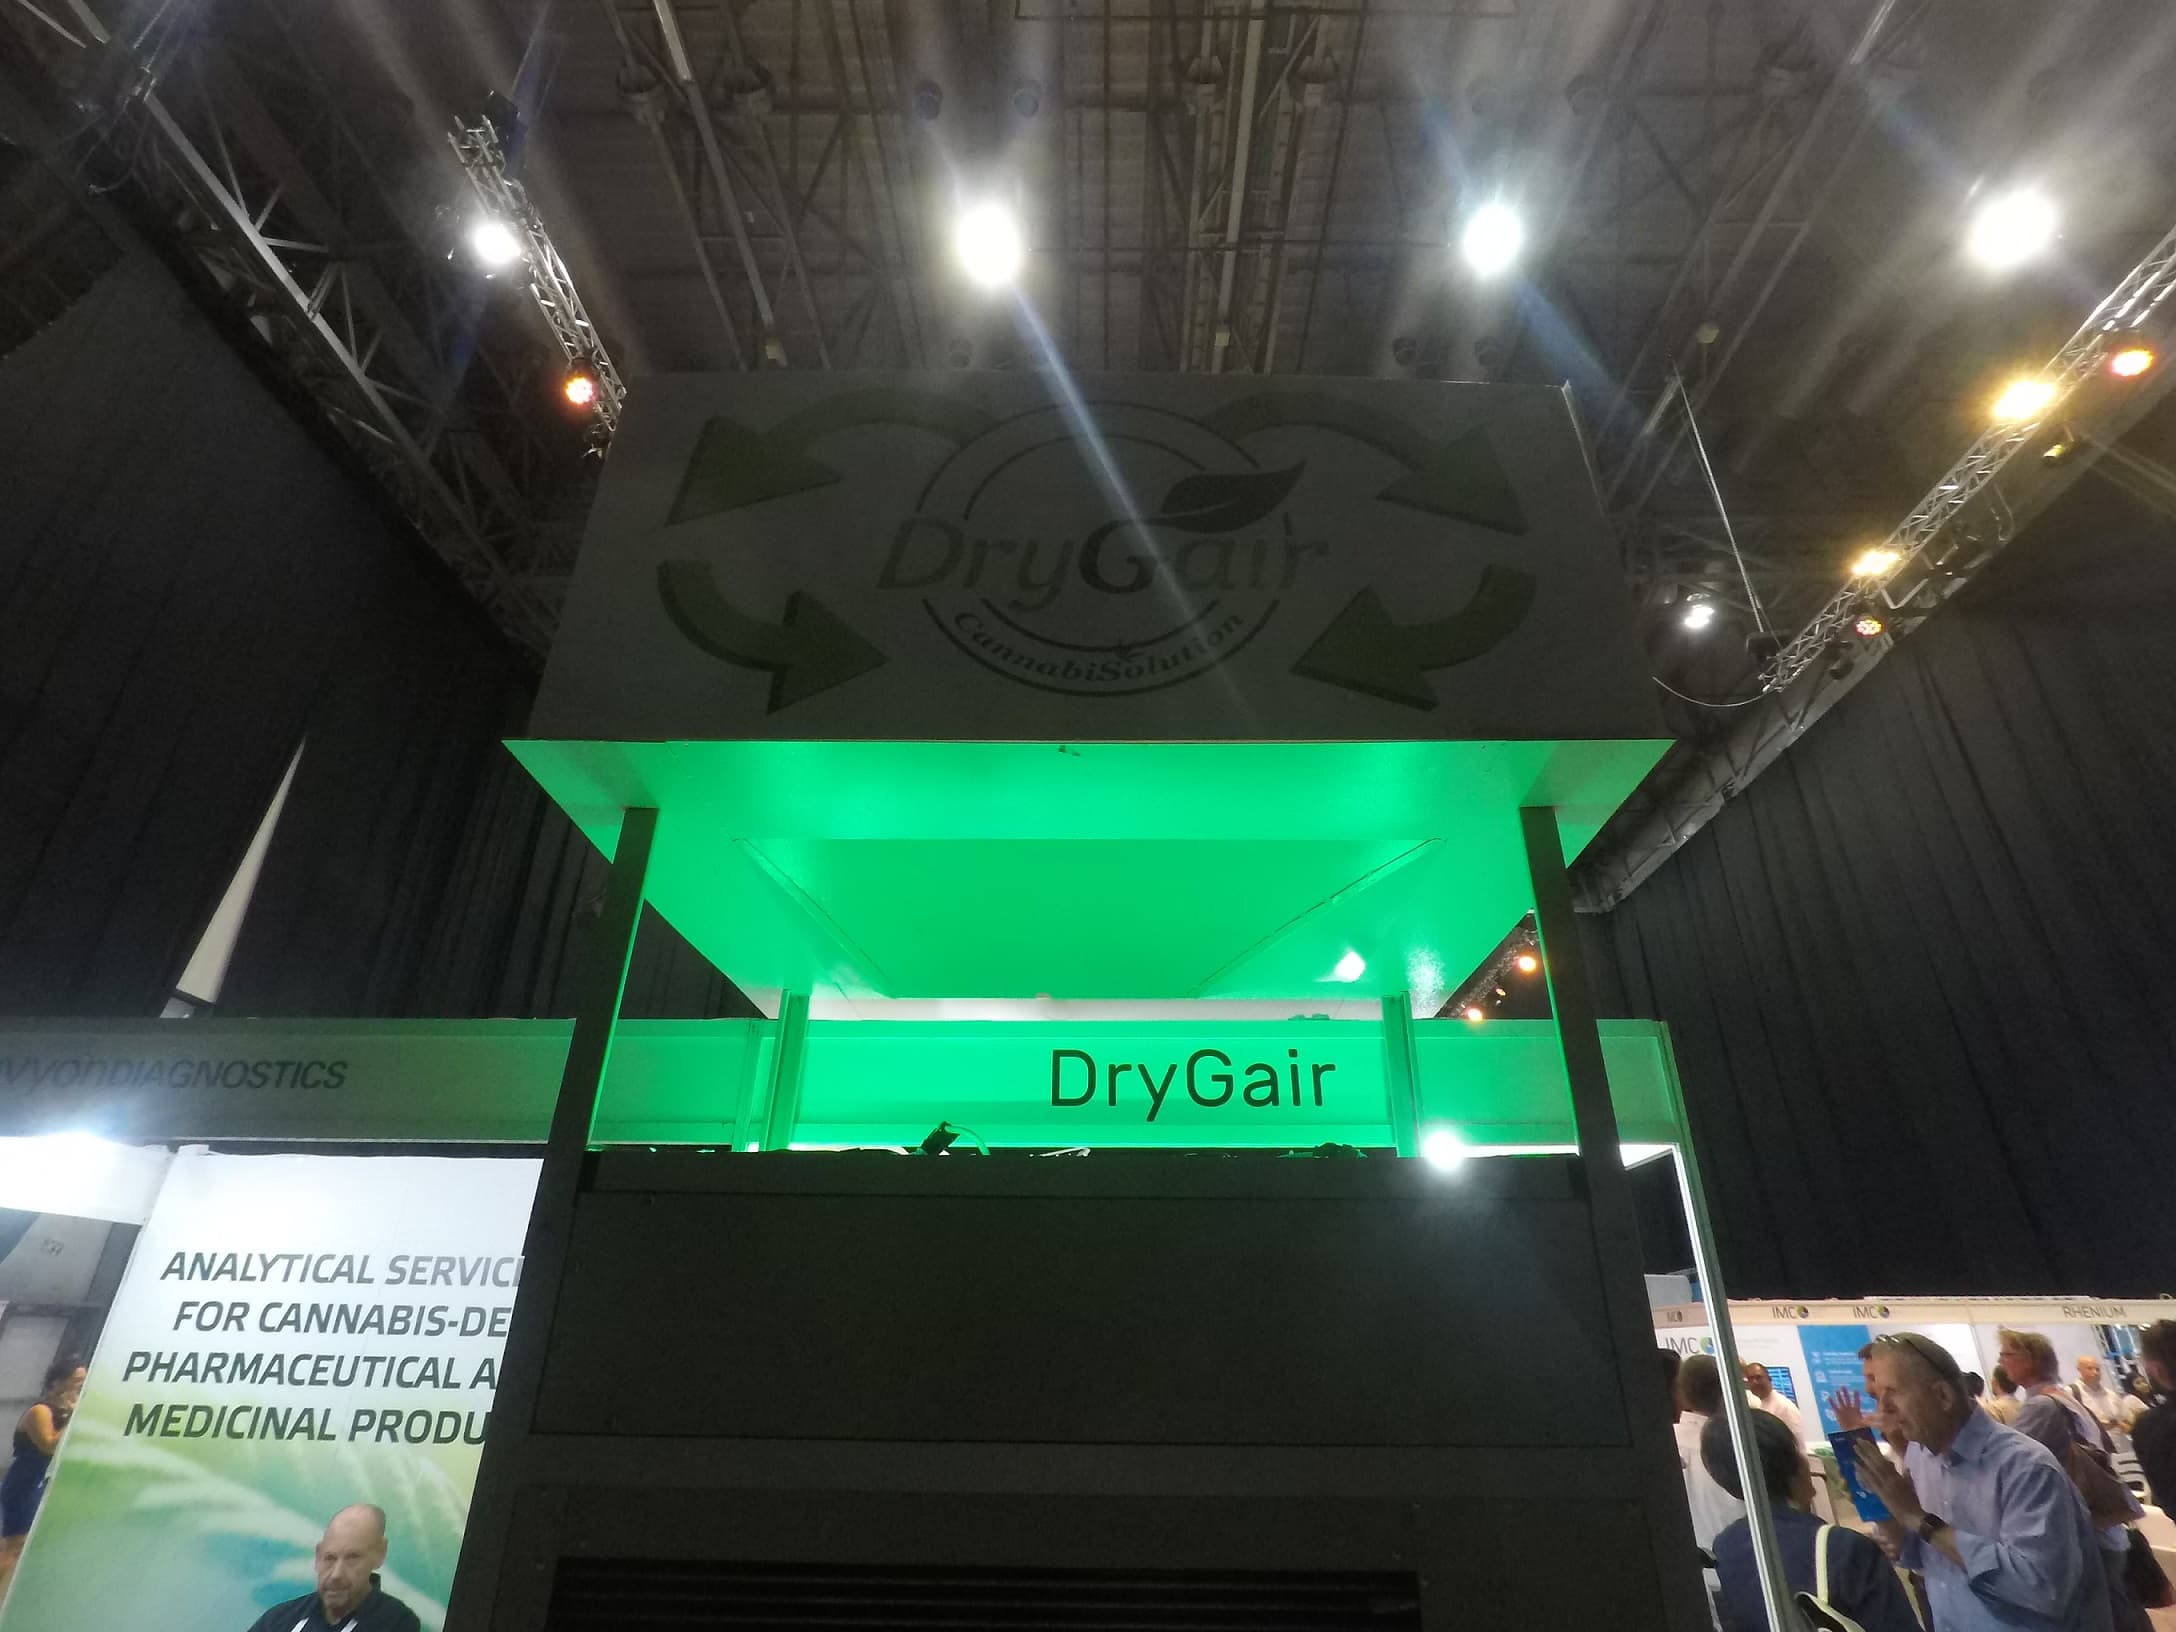 Drygair booth